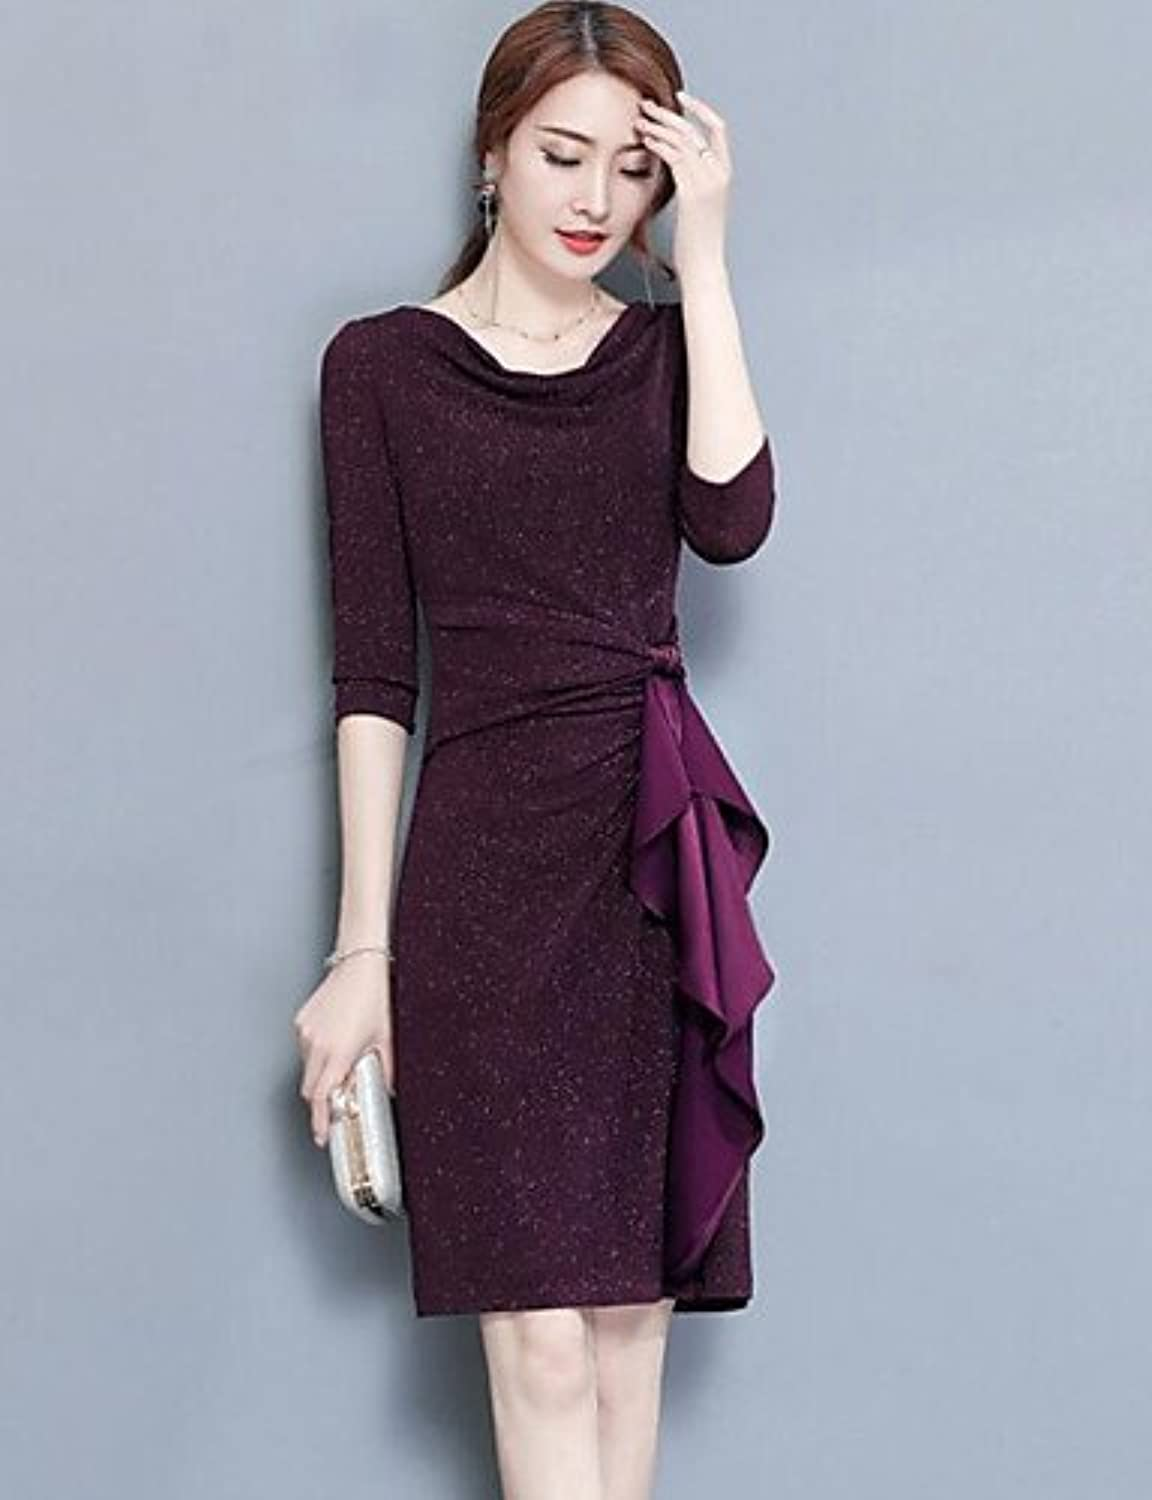 JIALE3536 Ladies dress Women's Dress, V Neck Long Sleeve Micro-elastic Opaque